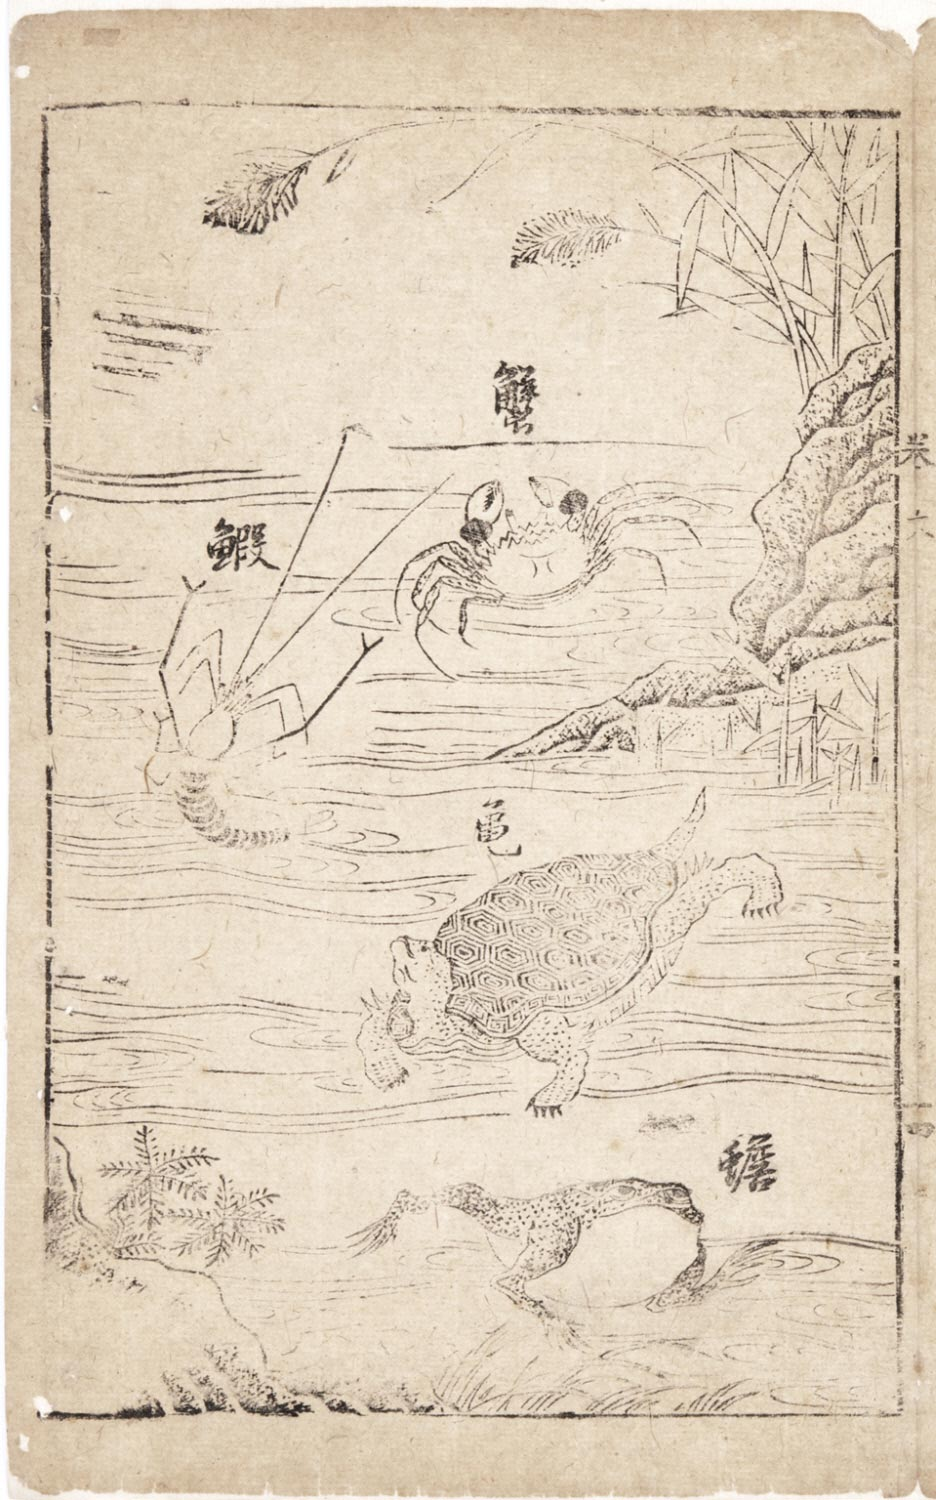 Tuhui zongyi (Principles of Painting): Shrimp, Crab, Turtle and Toad